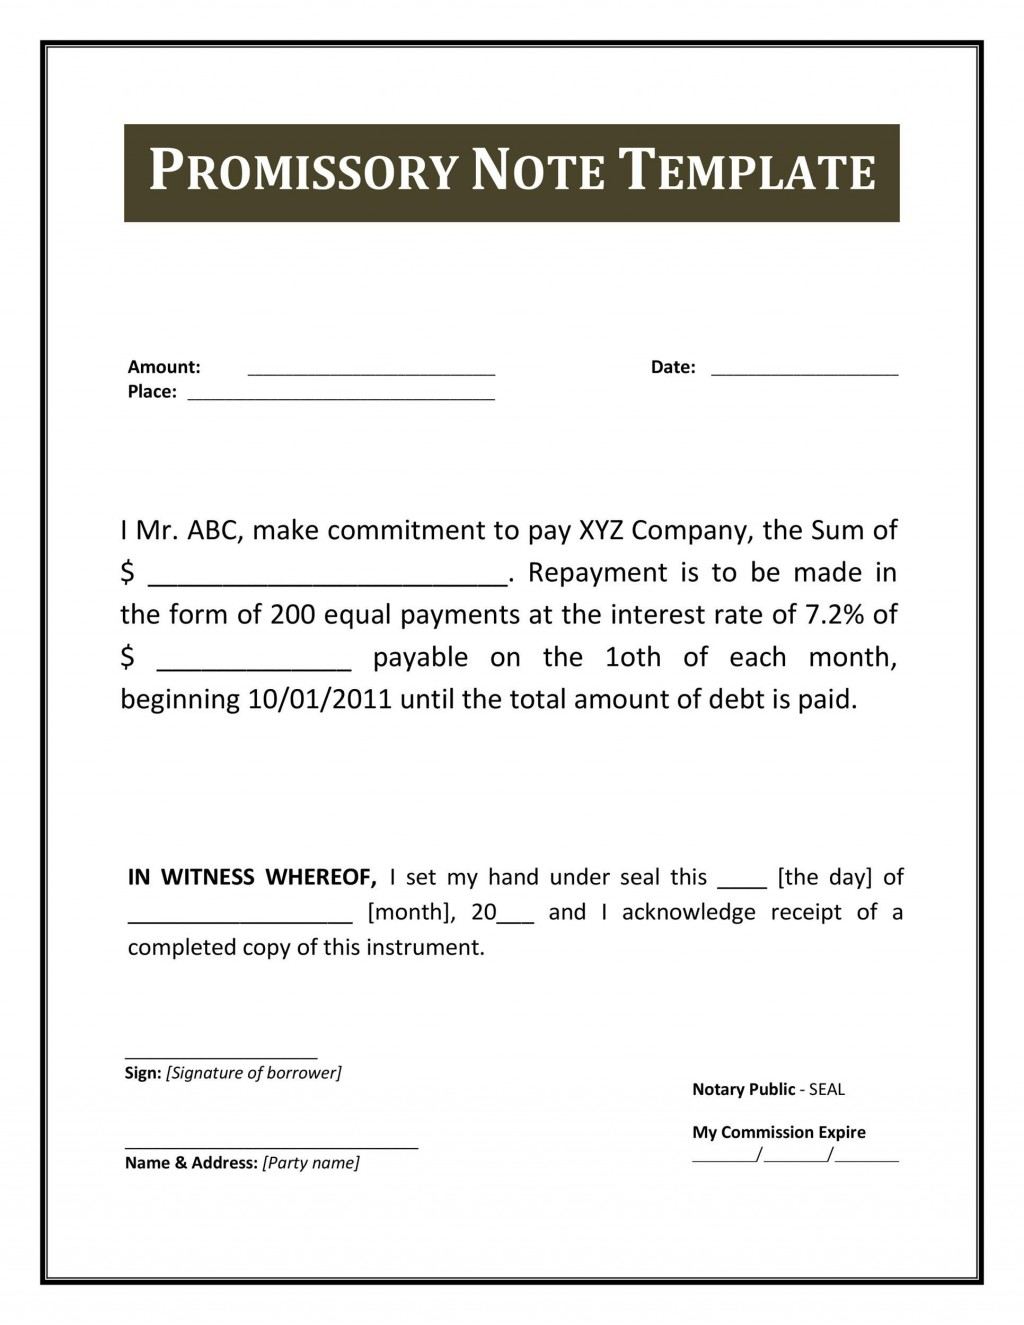 007 Unbelievable Template For Promissory Note Design  Personal Loan Free UkLarge